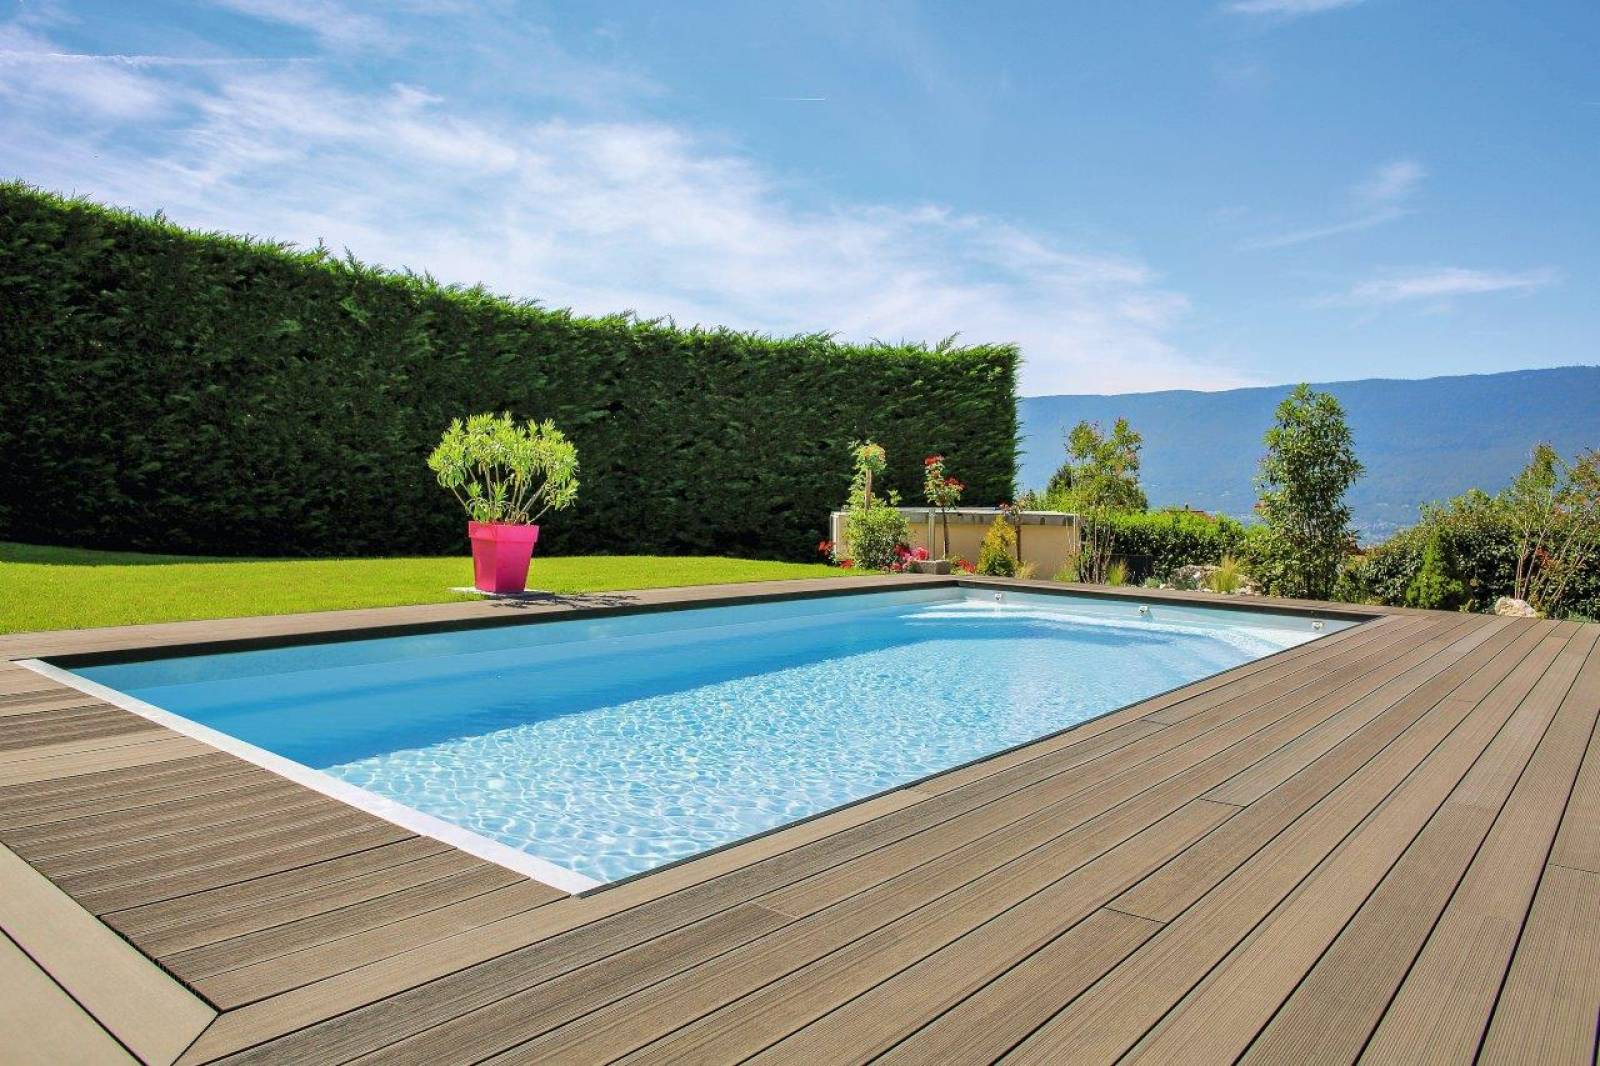 Piscine rectangulaire alliance piscines celestine 10 for Accessoire piscine 62